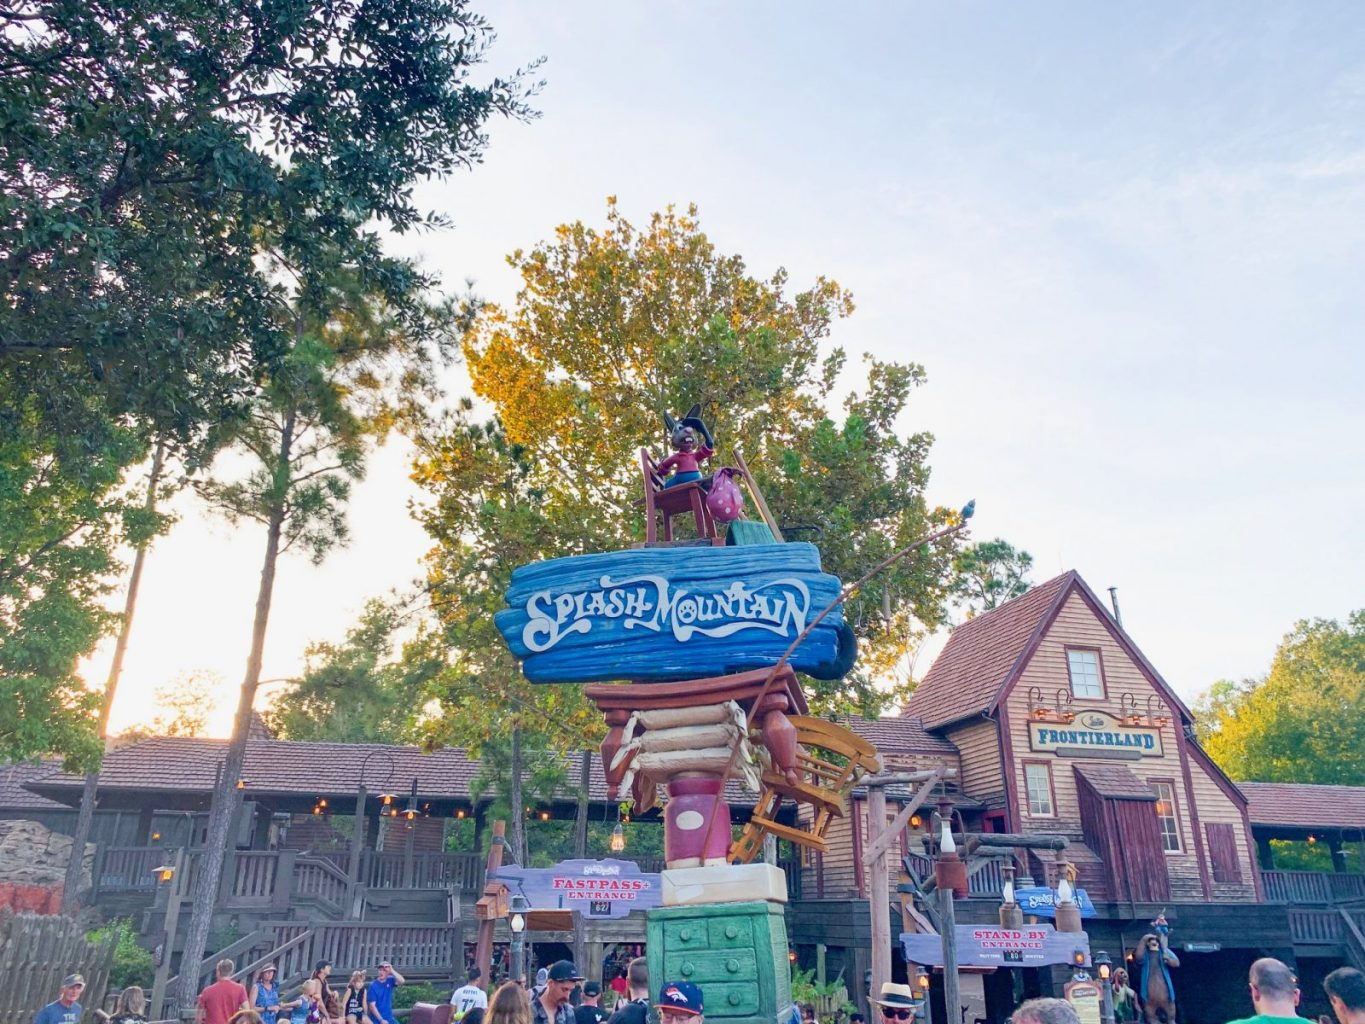 splash mountain is one of the best rides at Disney for bigger kids